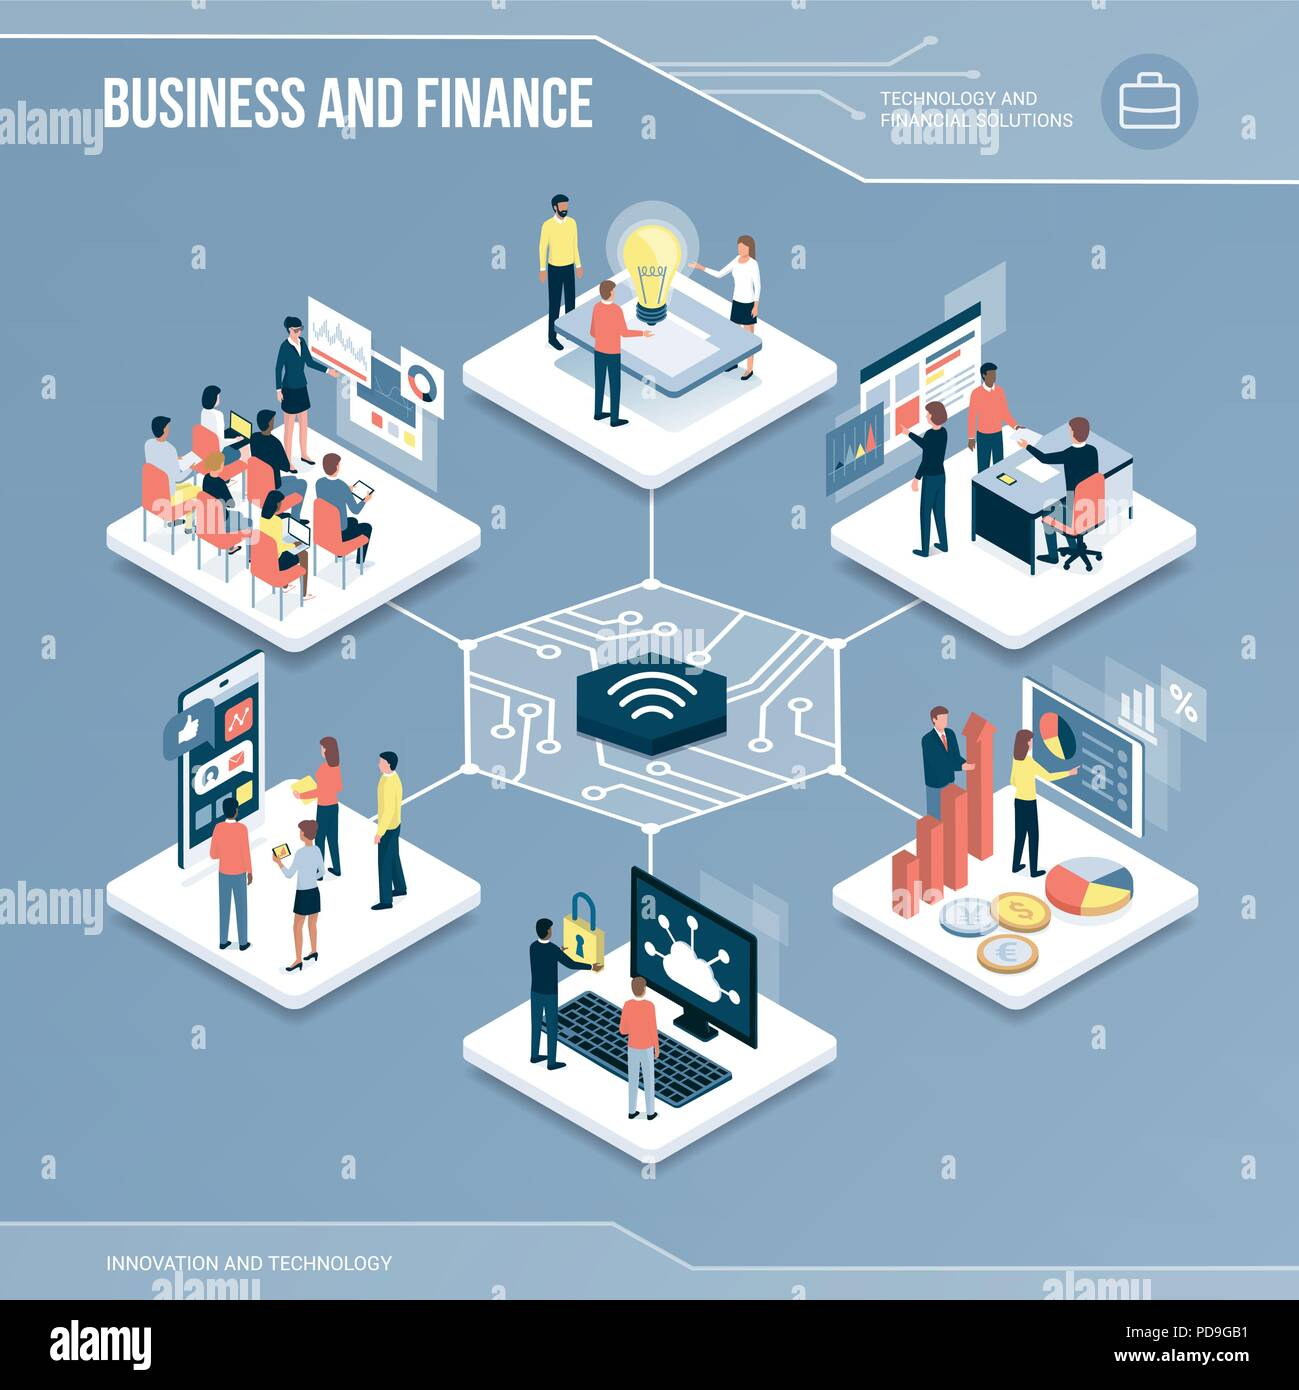 Digital core: business, finance and networks isometric infographic with people - Stock Vector